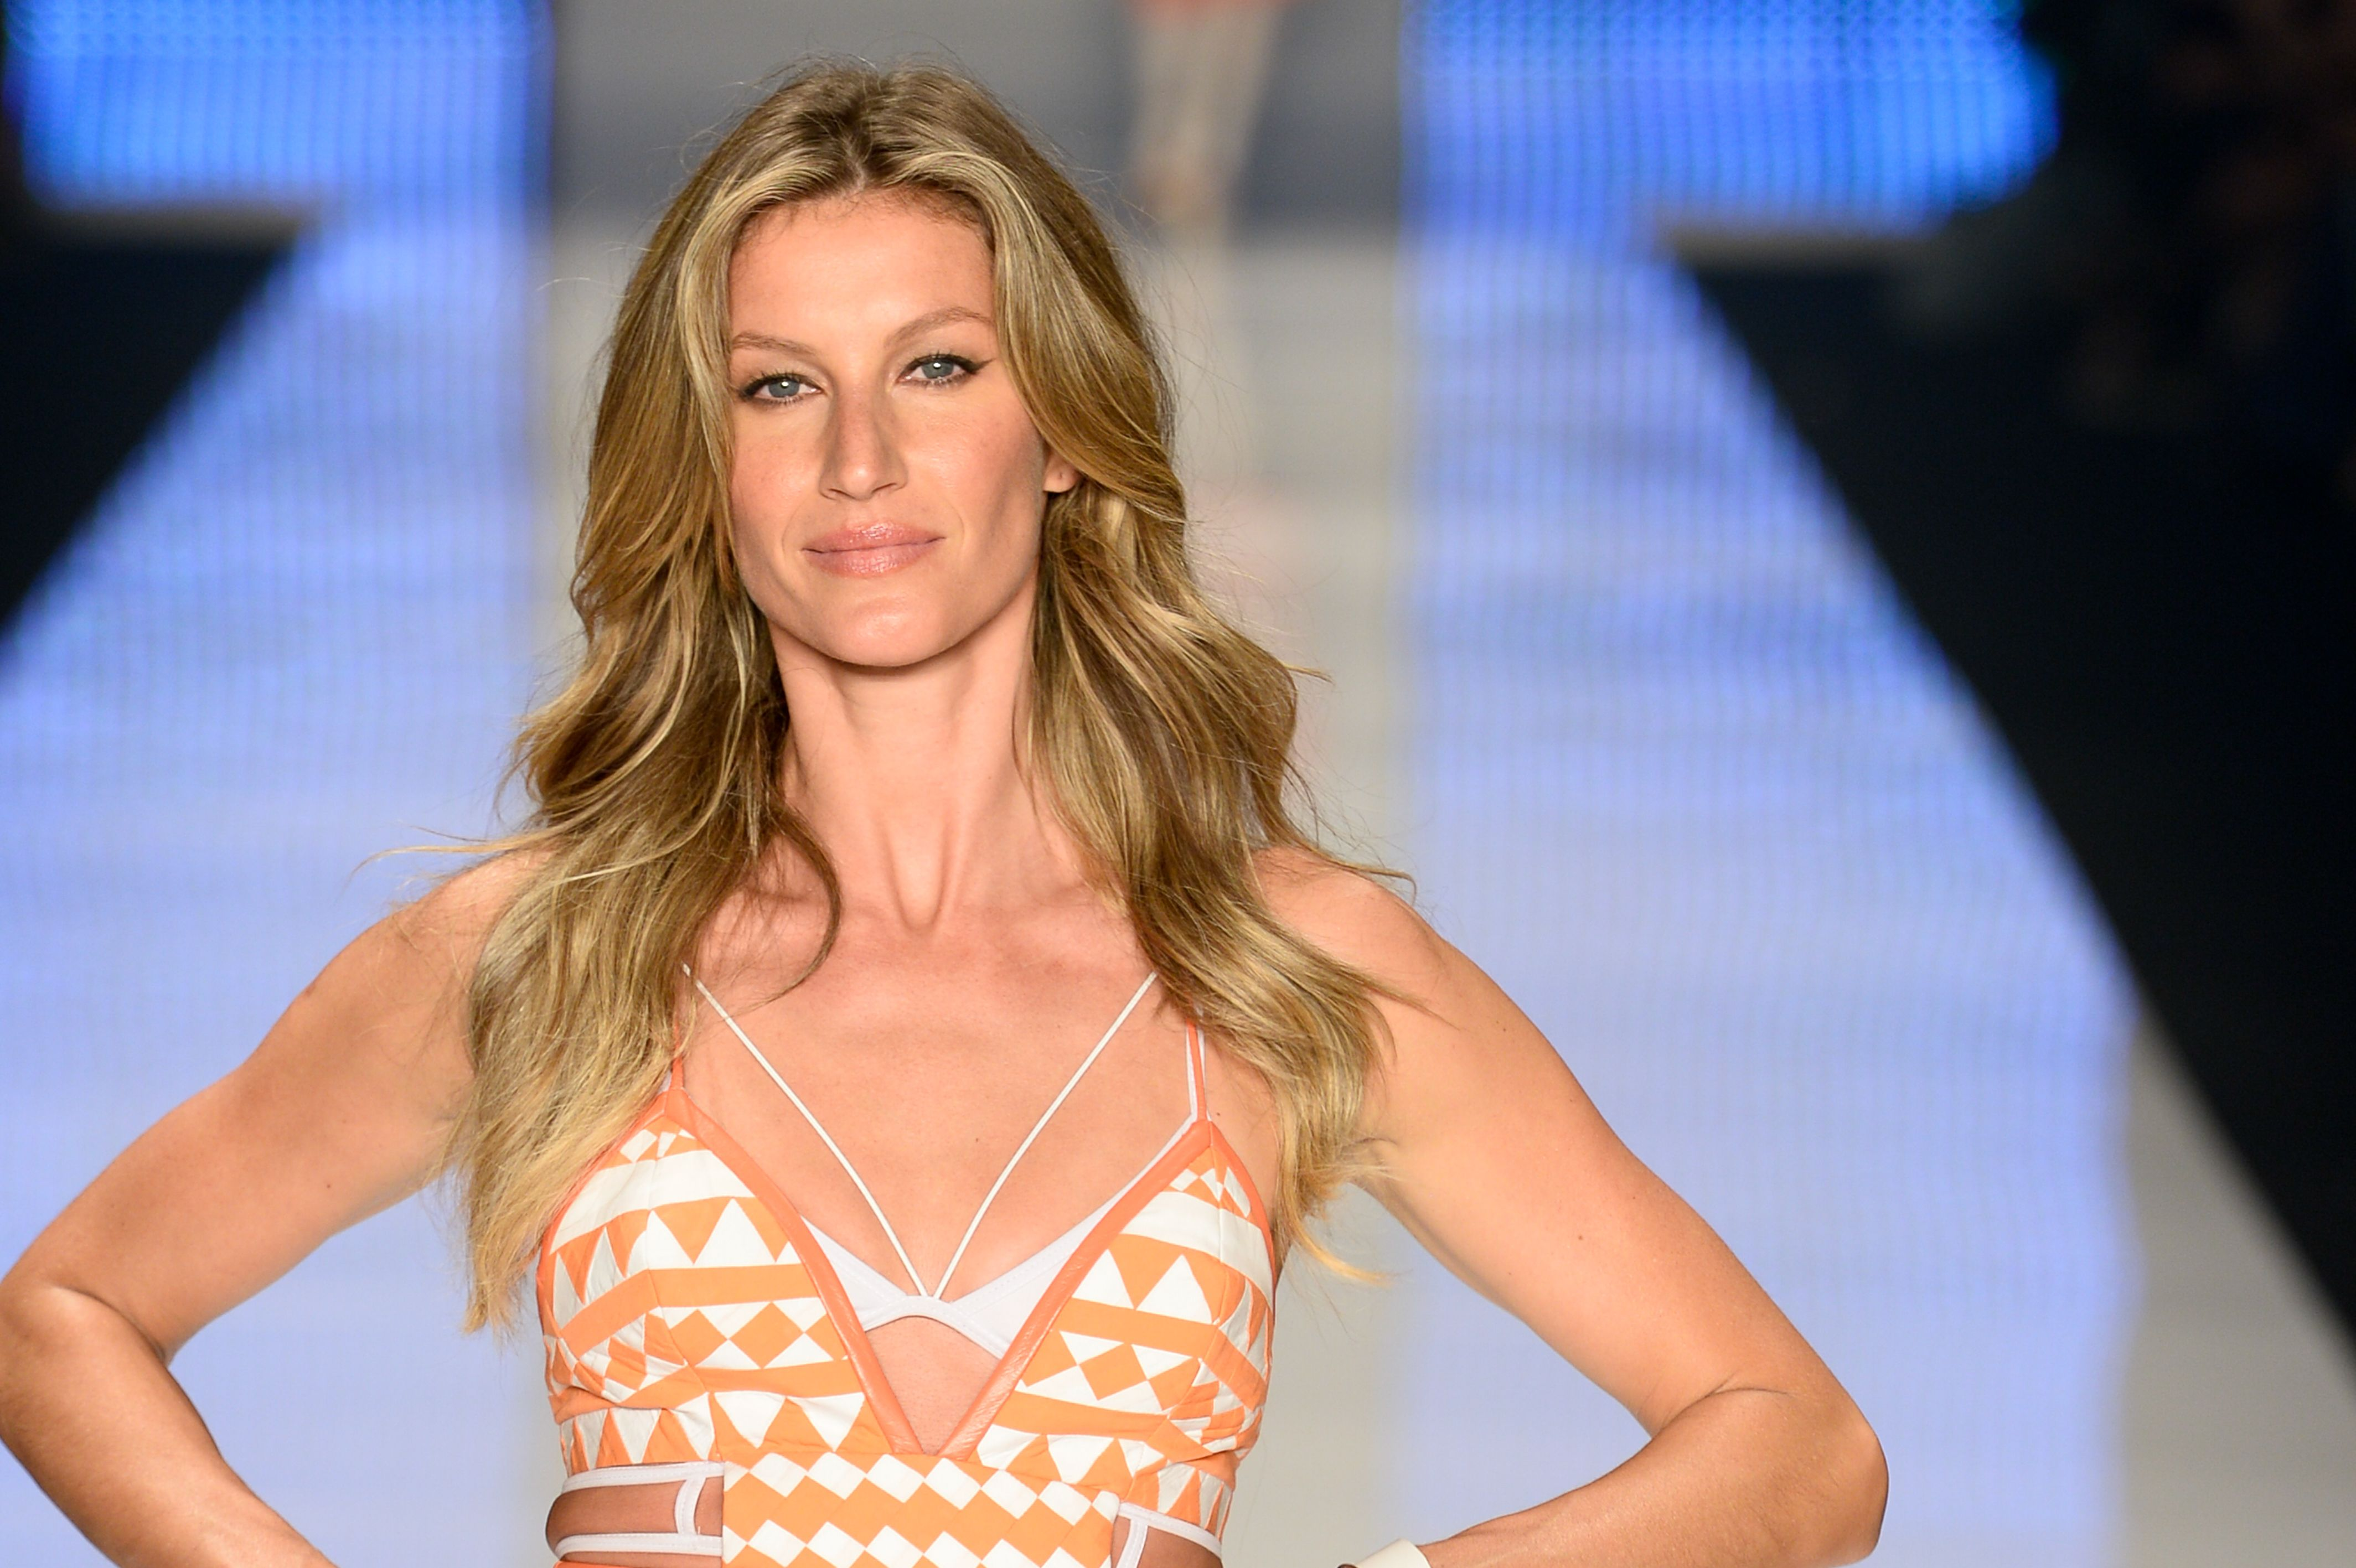 It's Official Gisele Bundchen Retires From the Runway